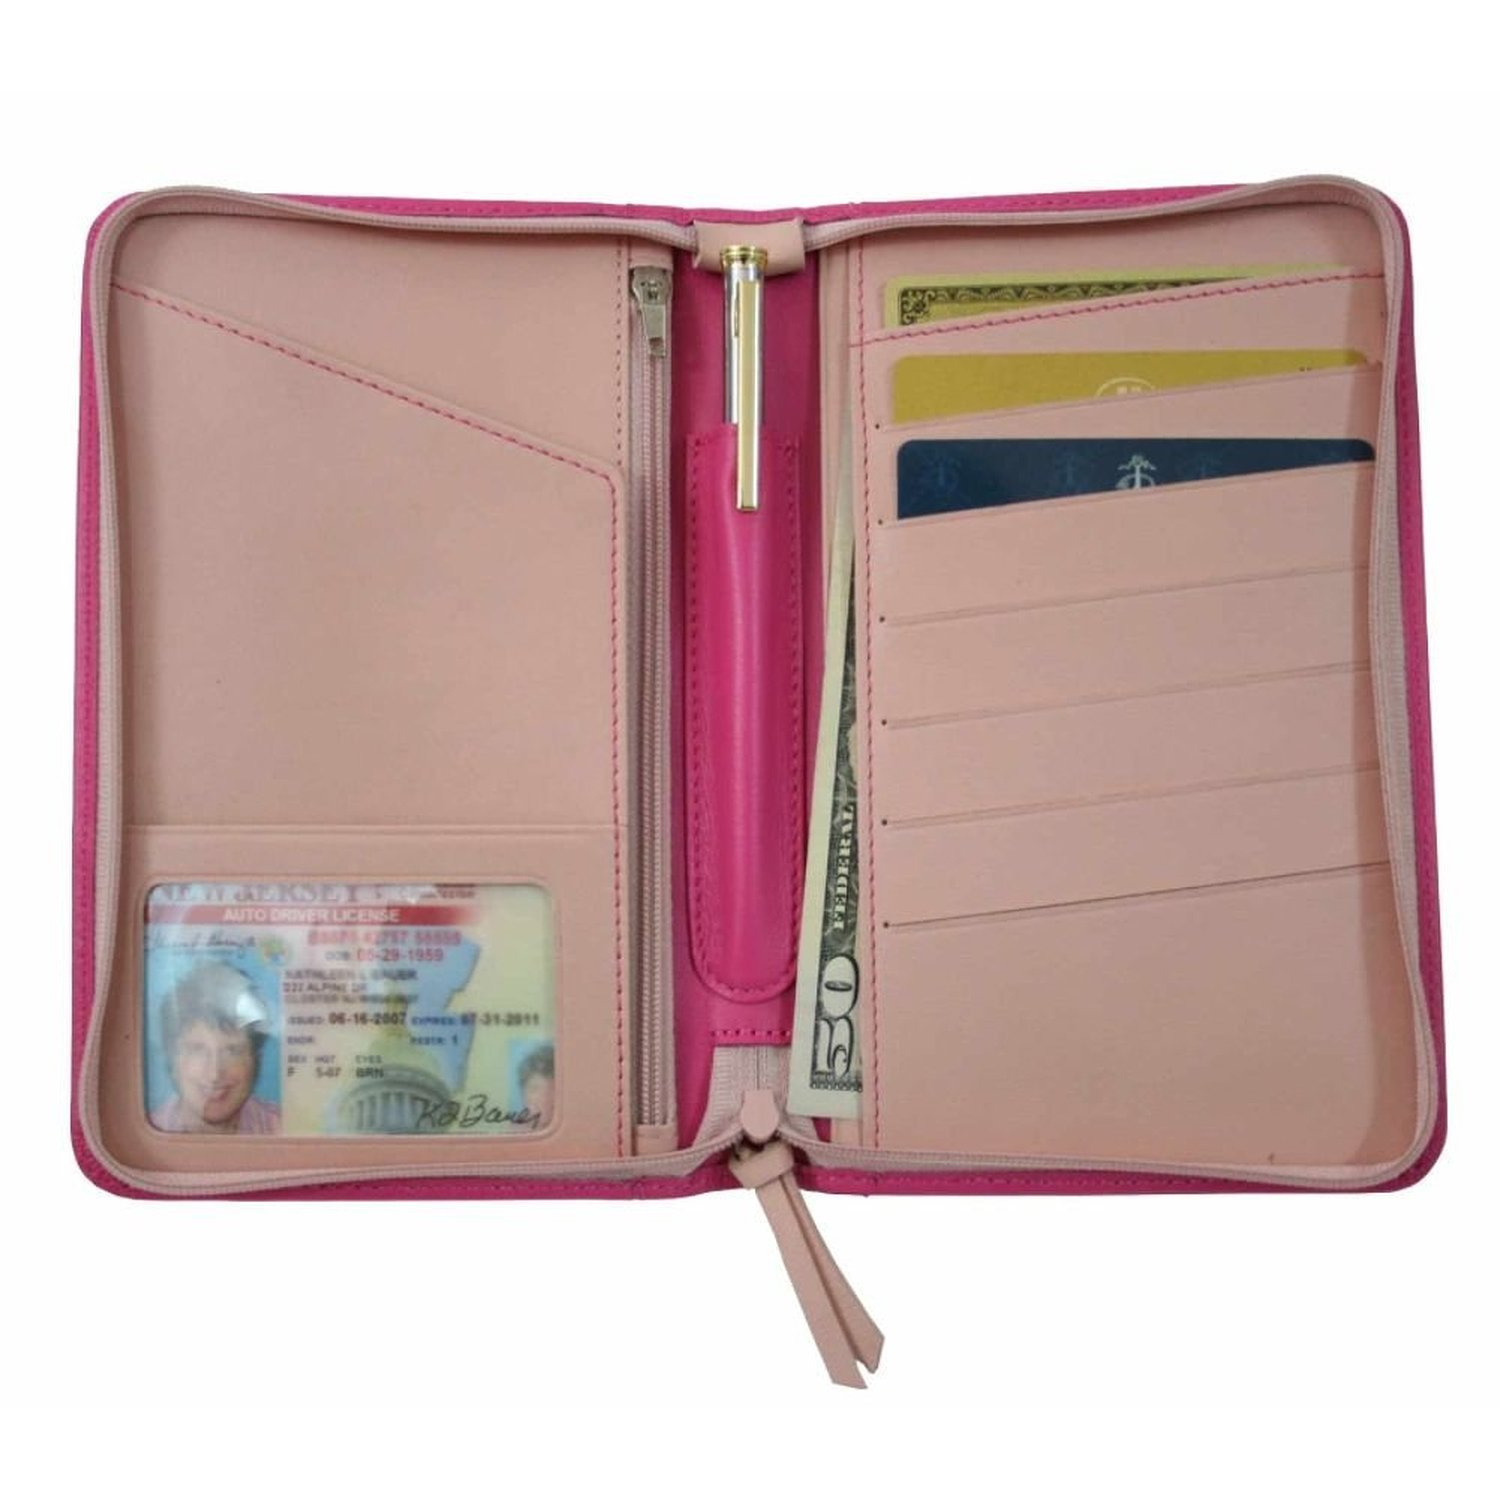 Royce Leather Two Toned Passport Travel Wallet 225-TAN-5